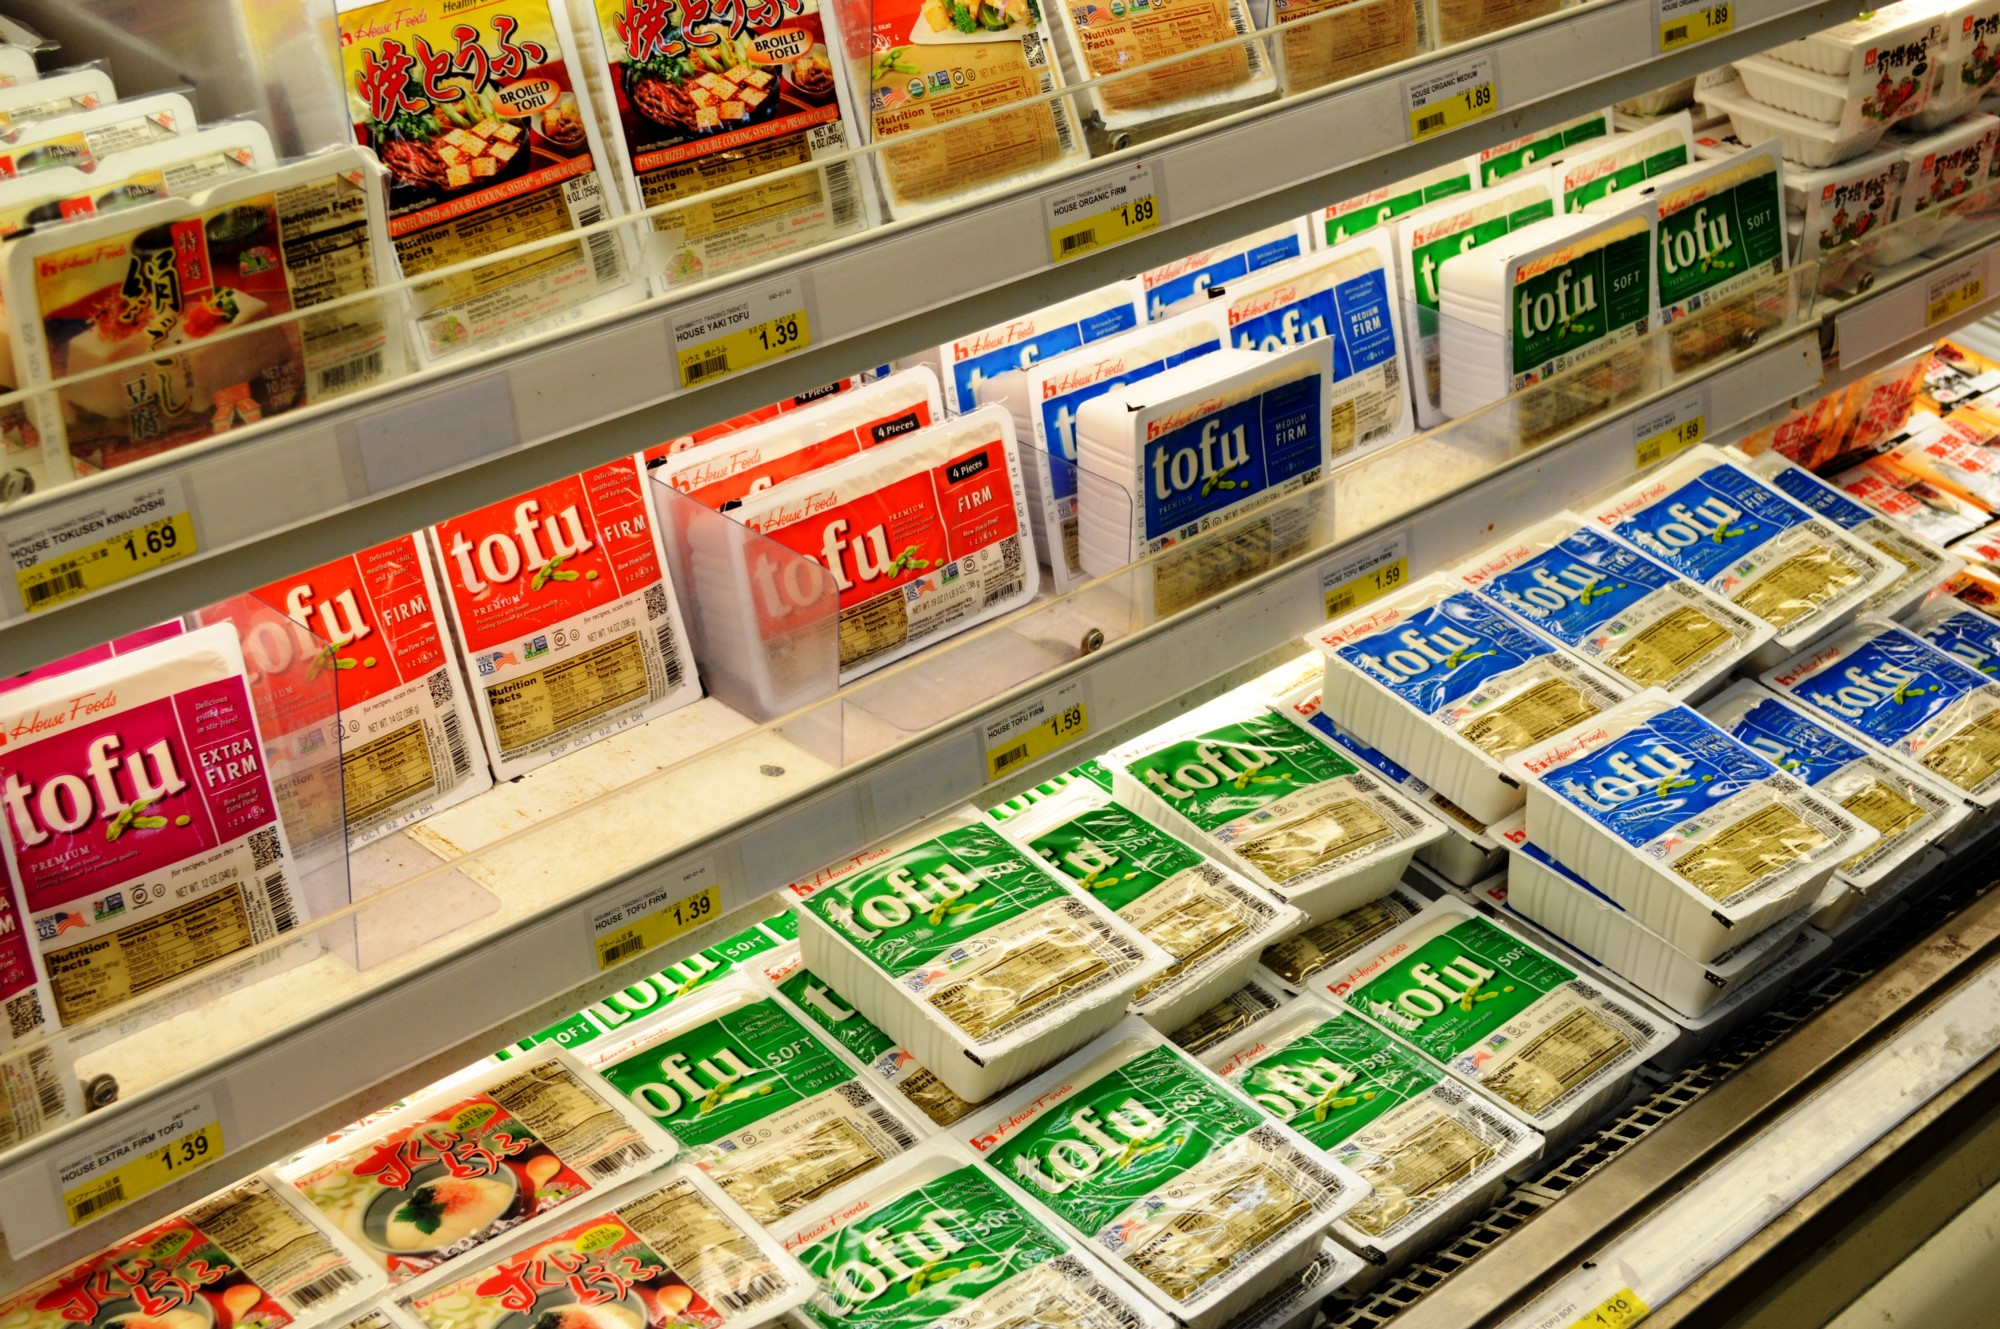 A grocery store refrigerated shelf stocked with many tubs of tofu — firm, extra-firm, and silken in different colors